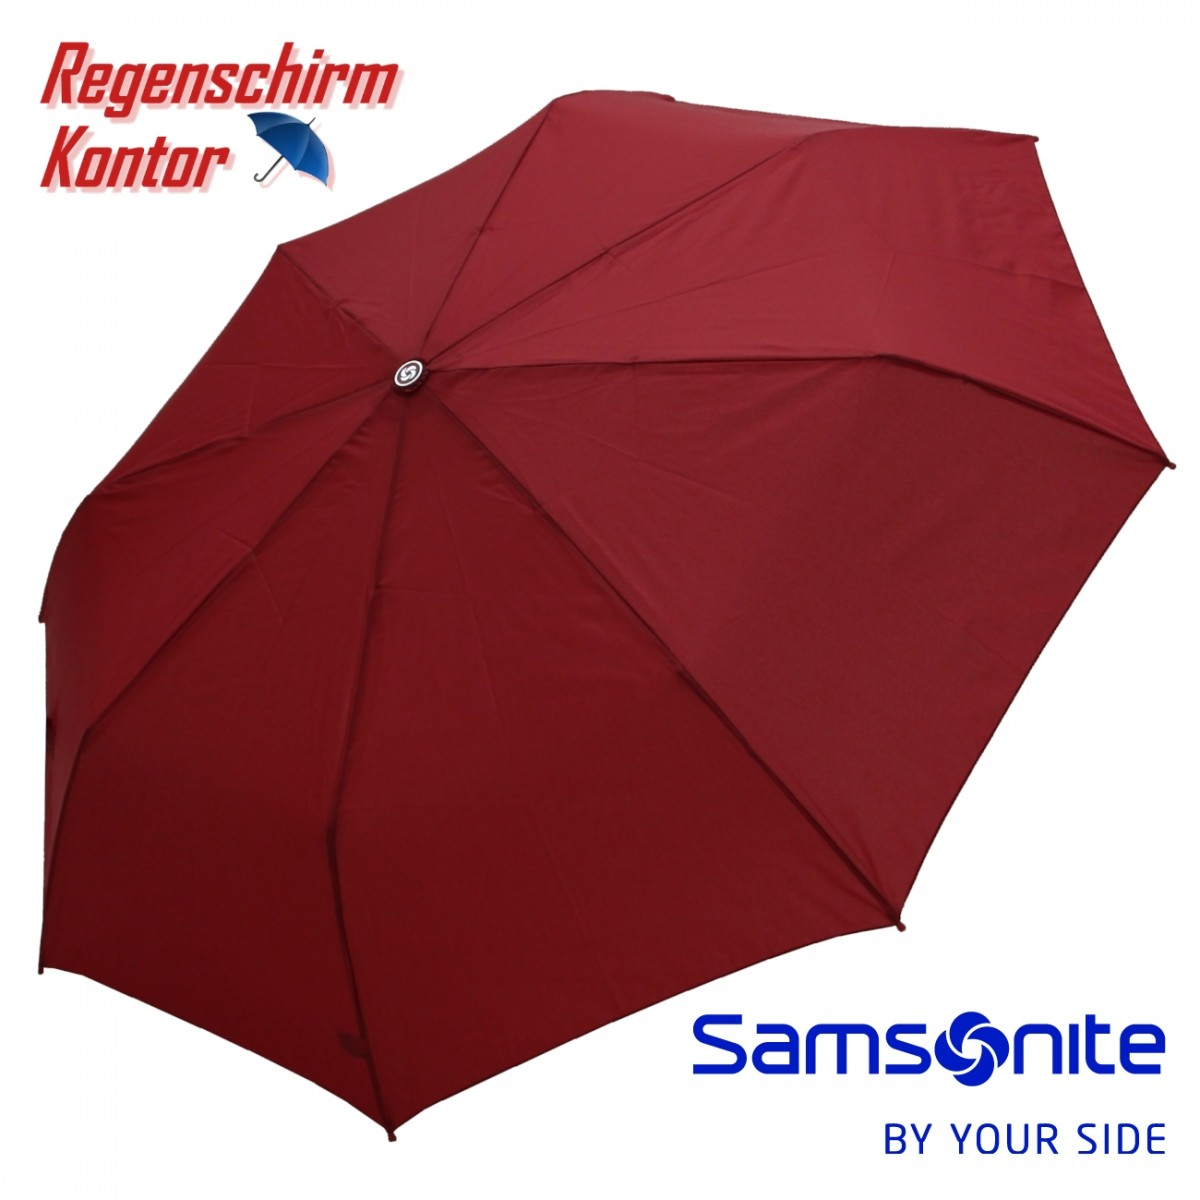 Regenschirm Taschenschirm Samsonite Uni Superlight Auto Open Close